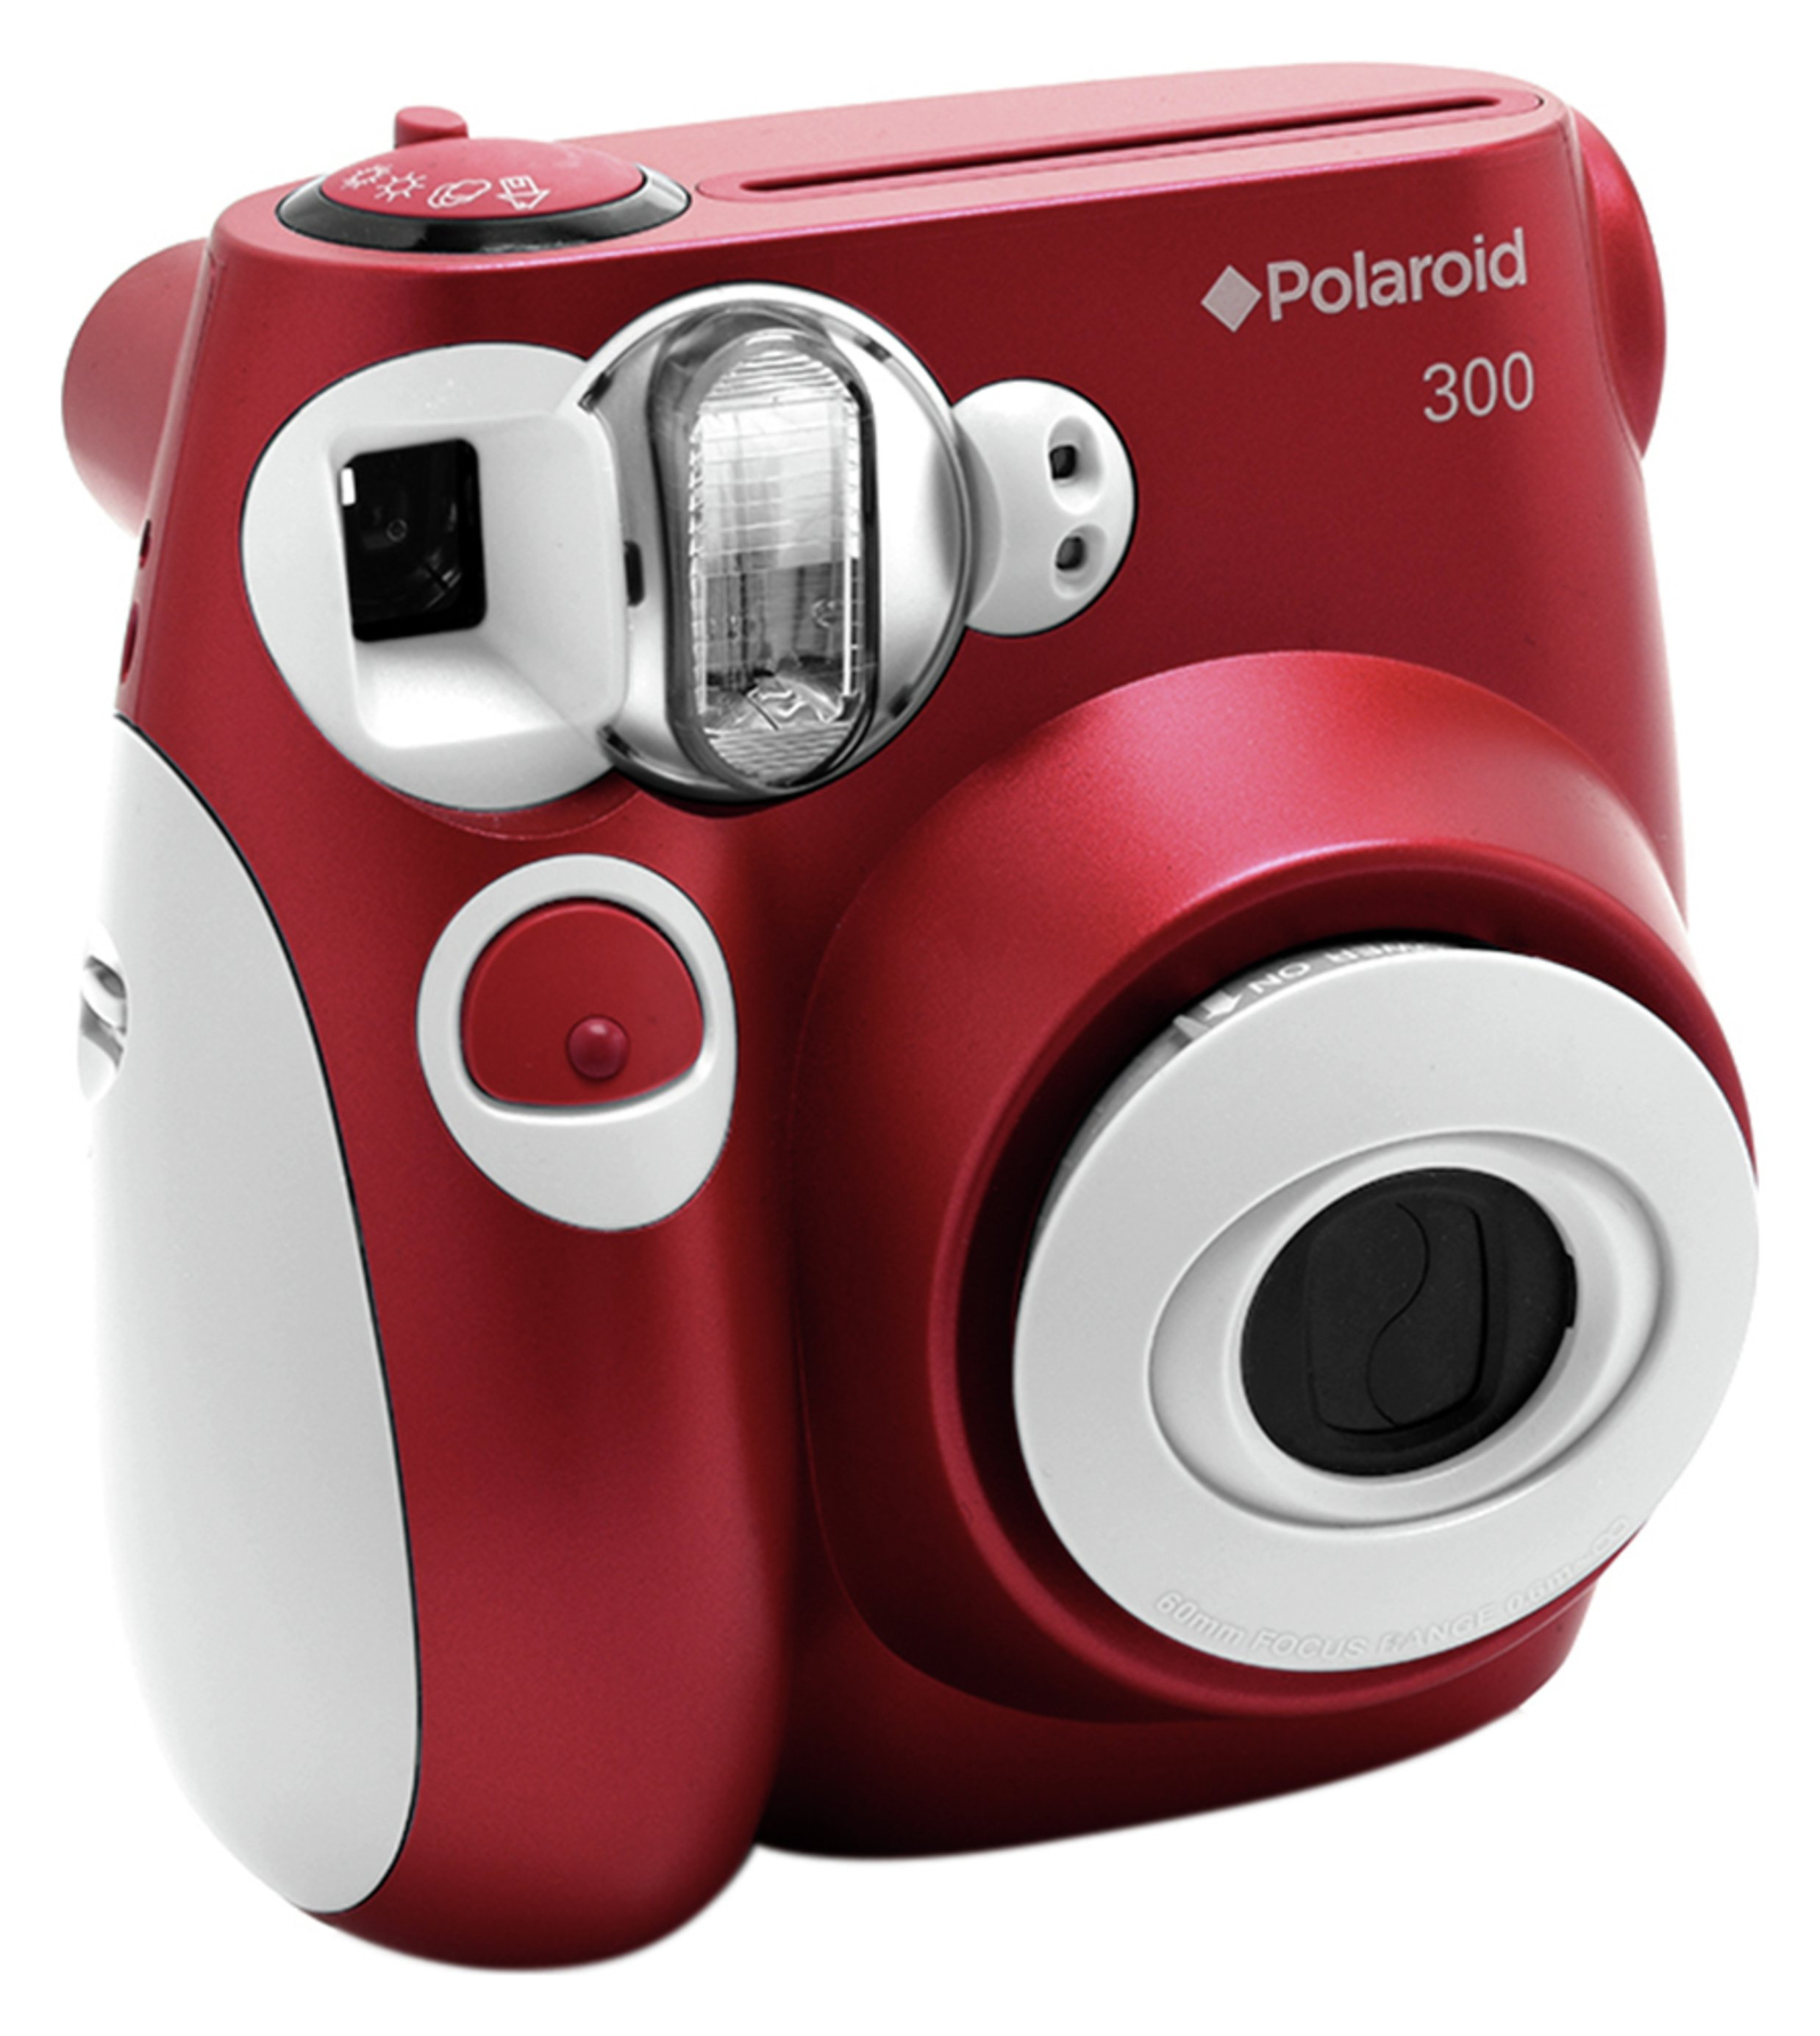 Polaroid PIC 300 Instant Film Camera - Red.